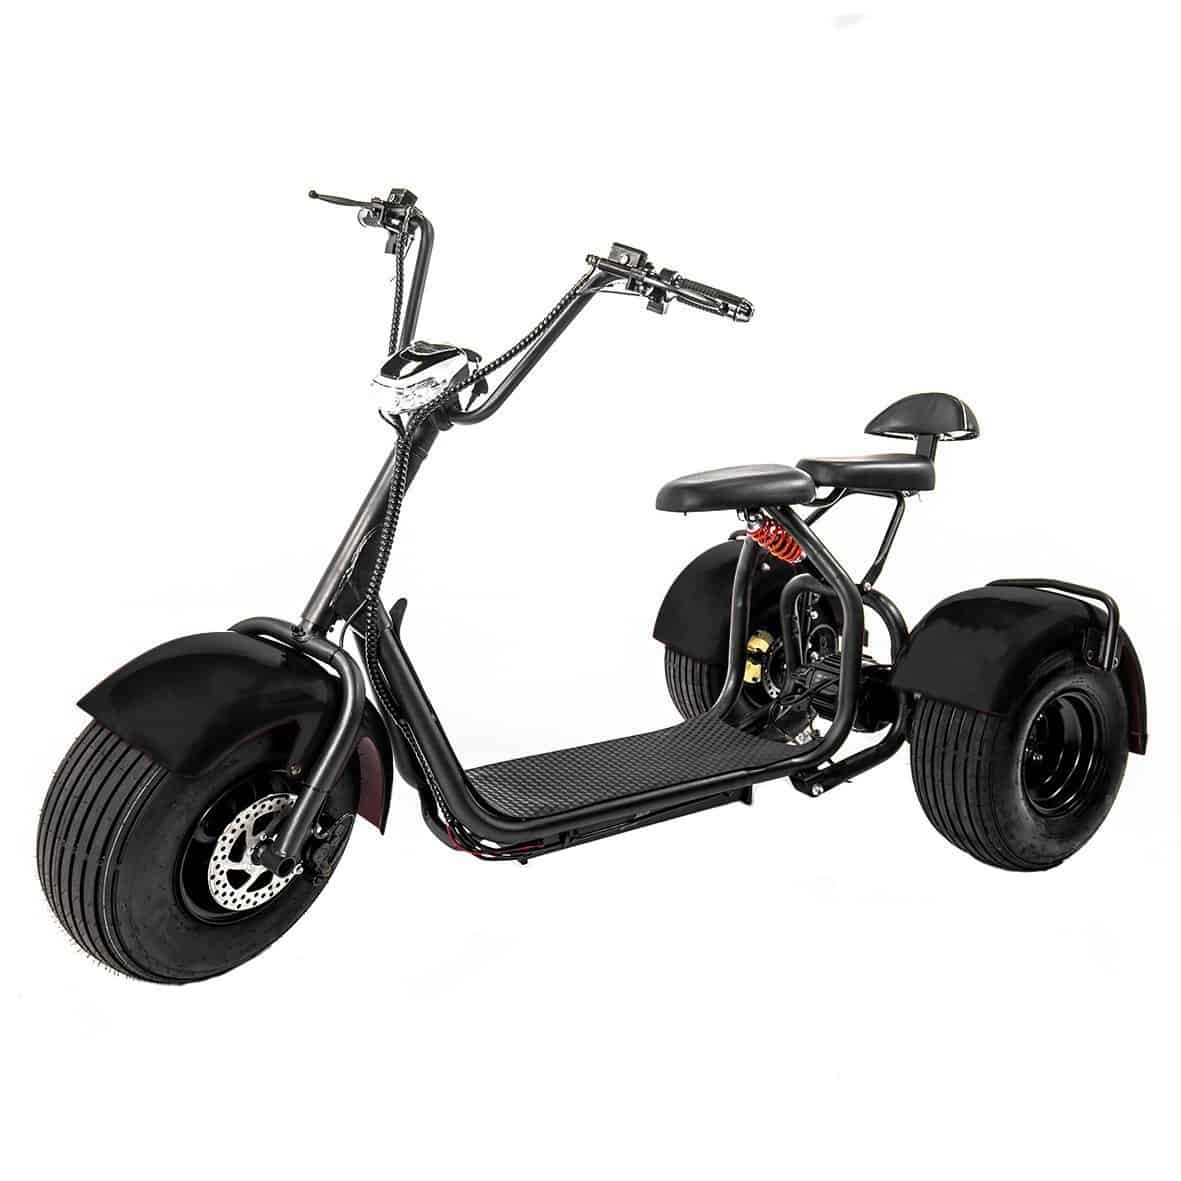 Electric Trikes for Adults – Our Top 3